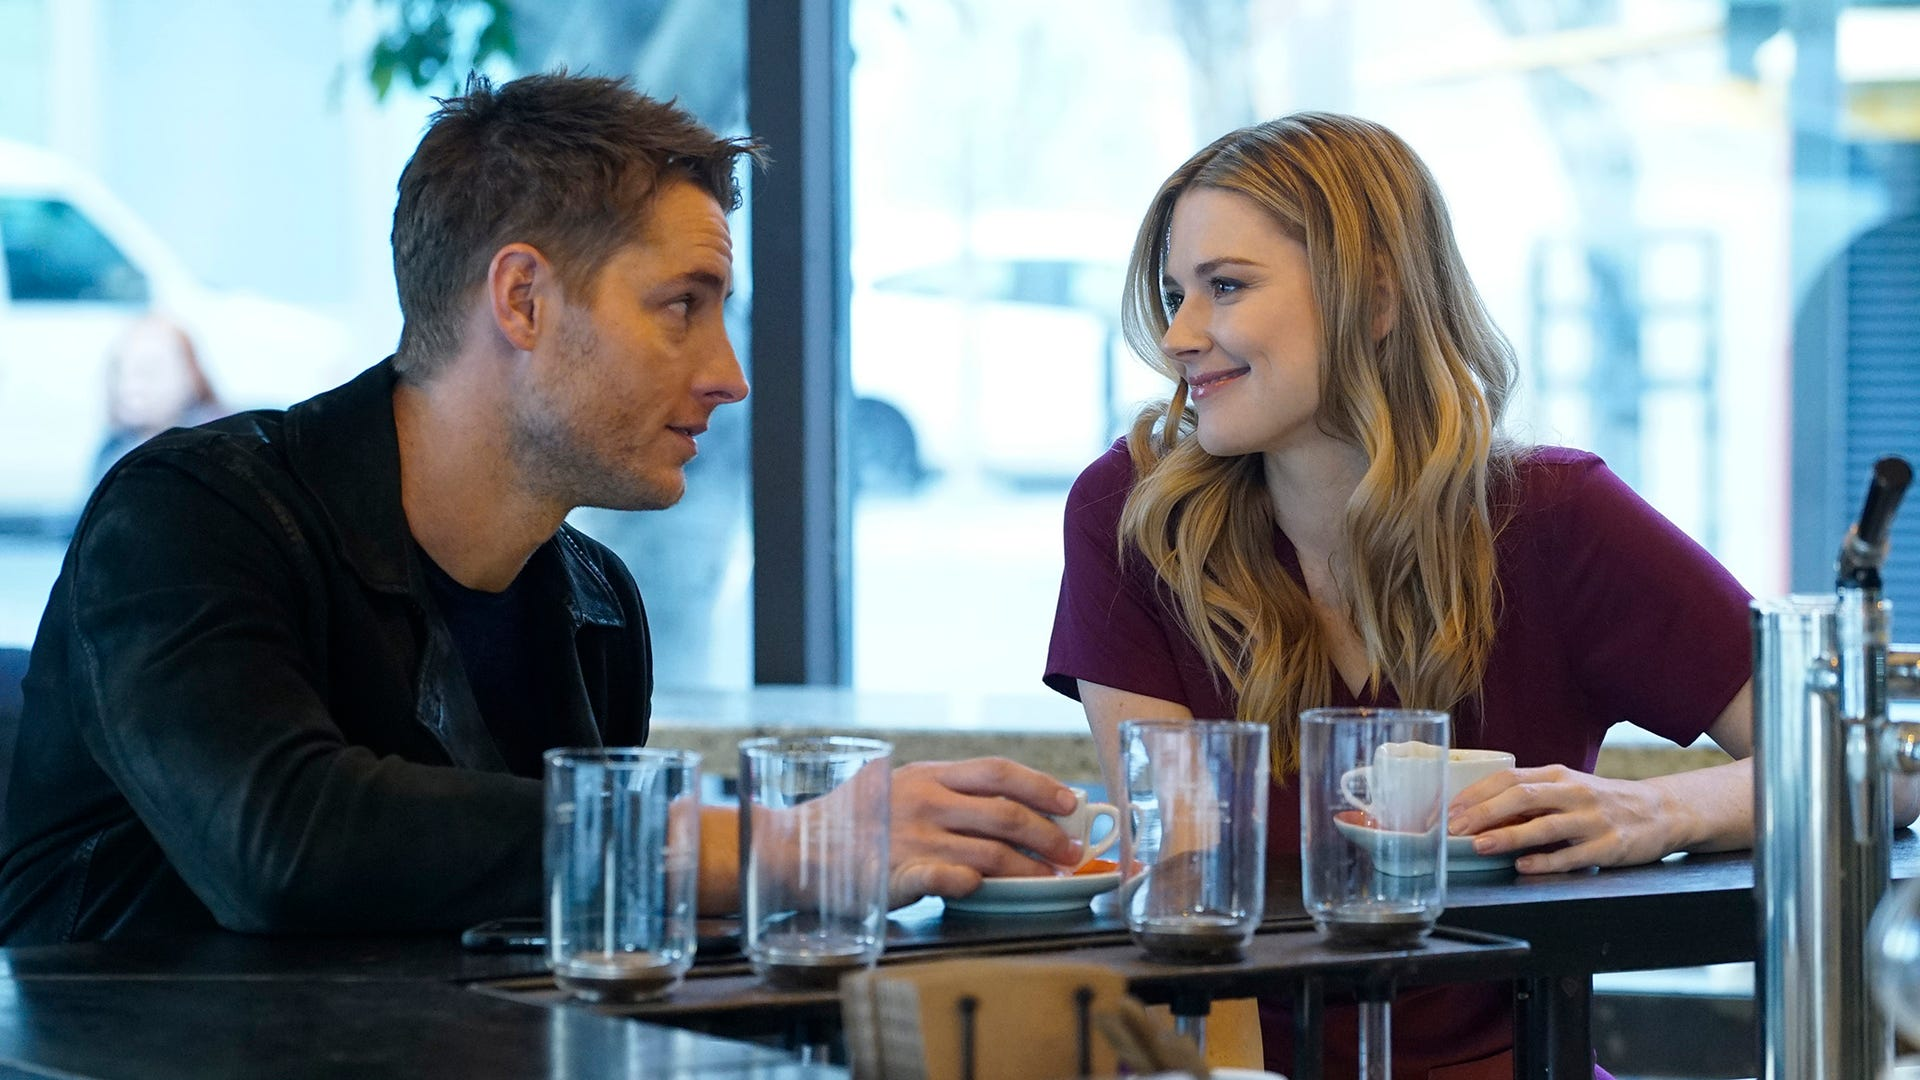 Justin Hartley as Kevin, Alexandra Breckenridge as Sophie, This Is Us